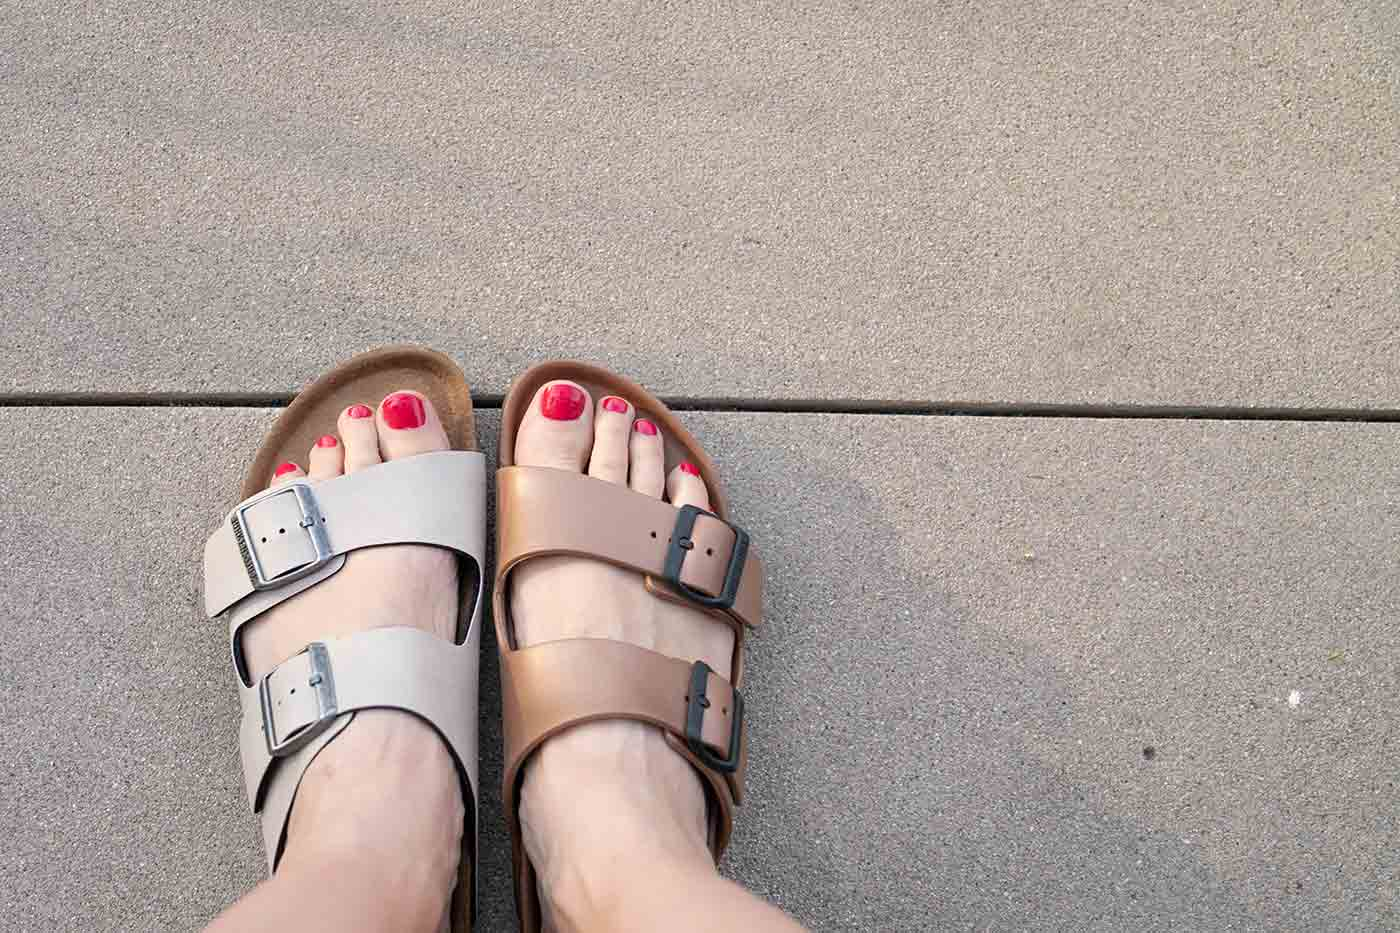 rubber and vegan leather Birkenstocks side by side